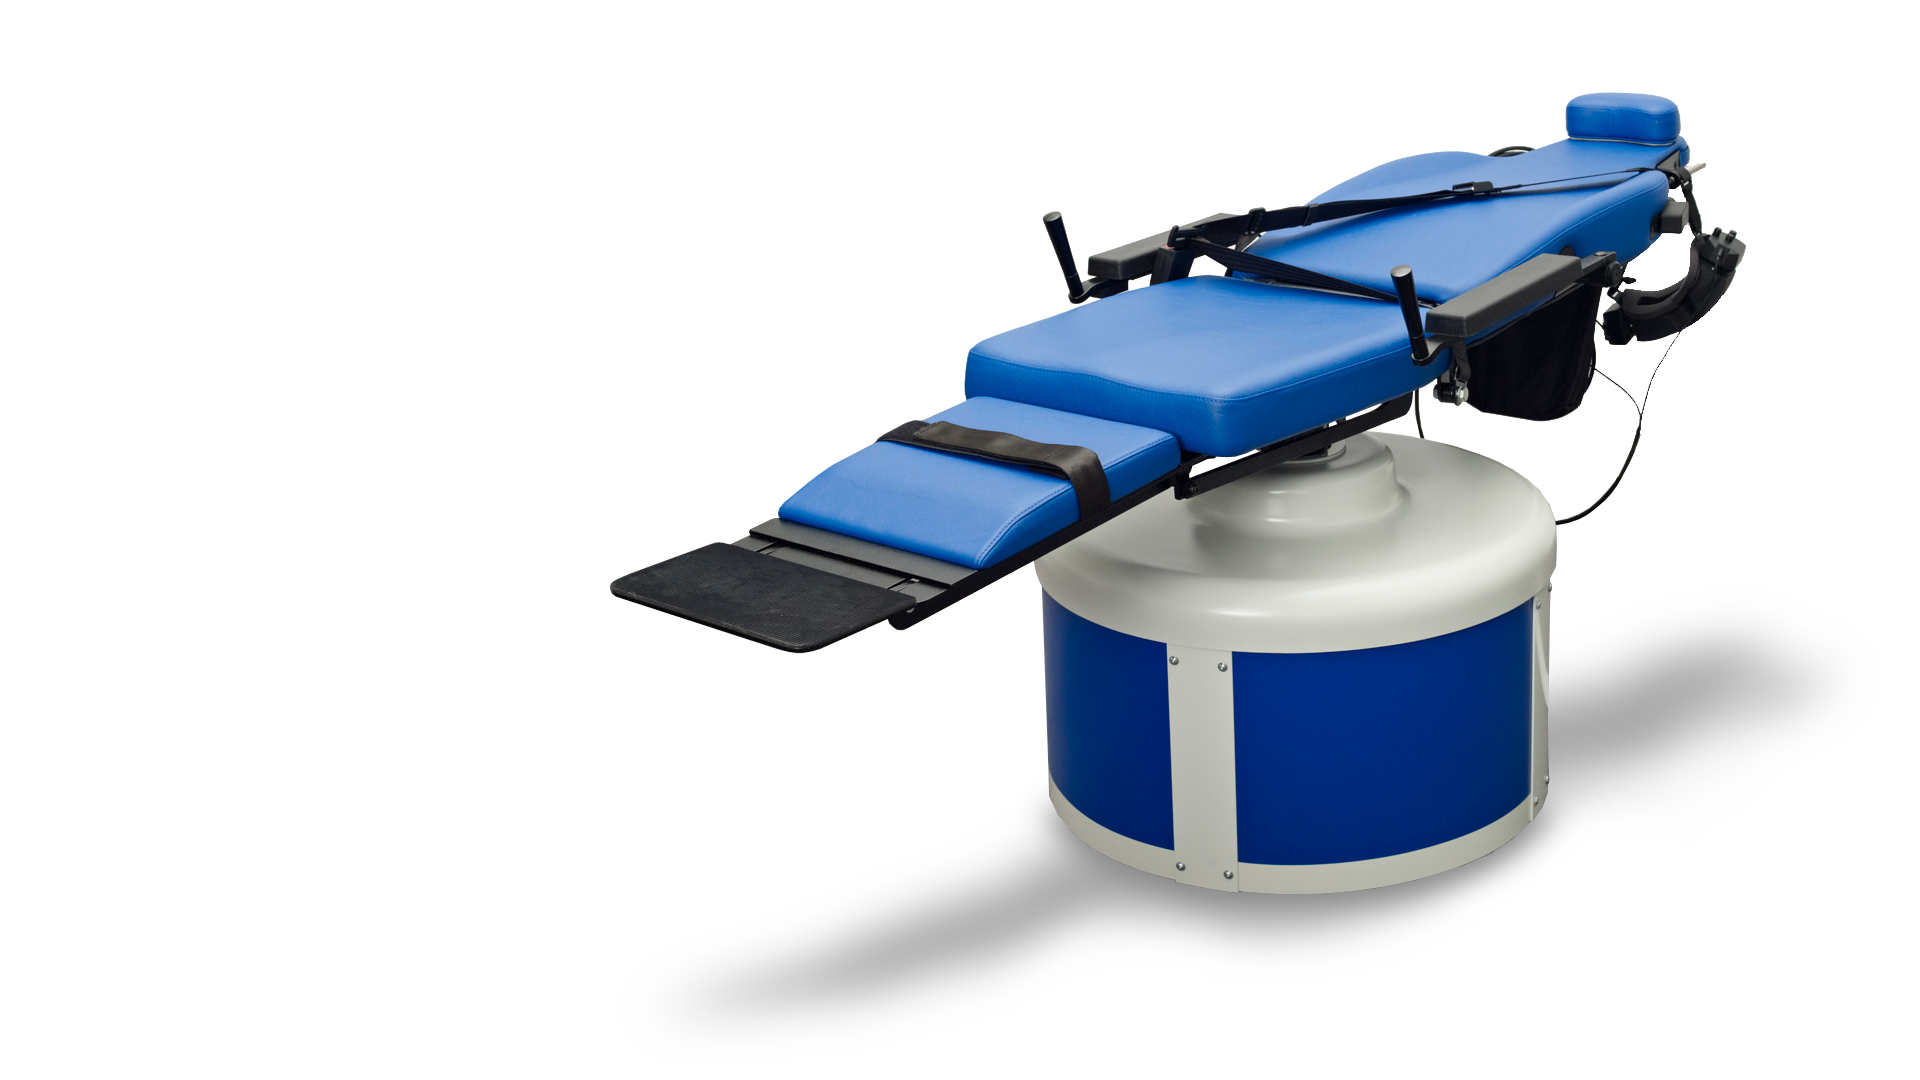 This is a photo of the blue Nydiag 200 rotary chair for vestibular diagnosis.